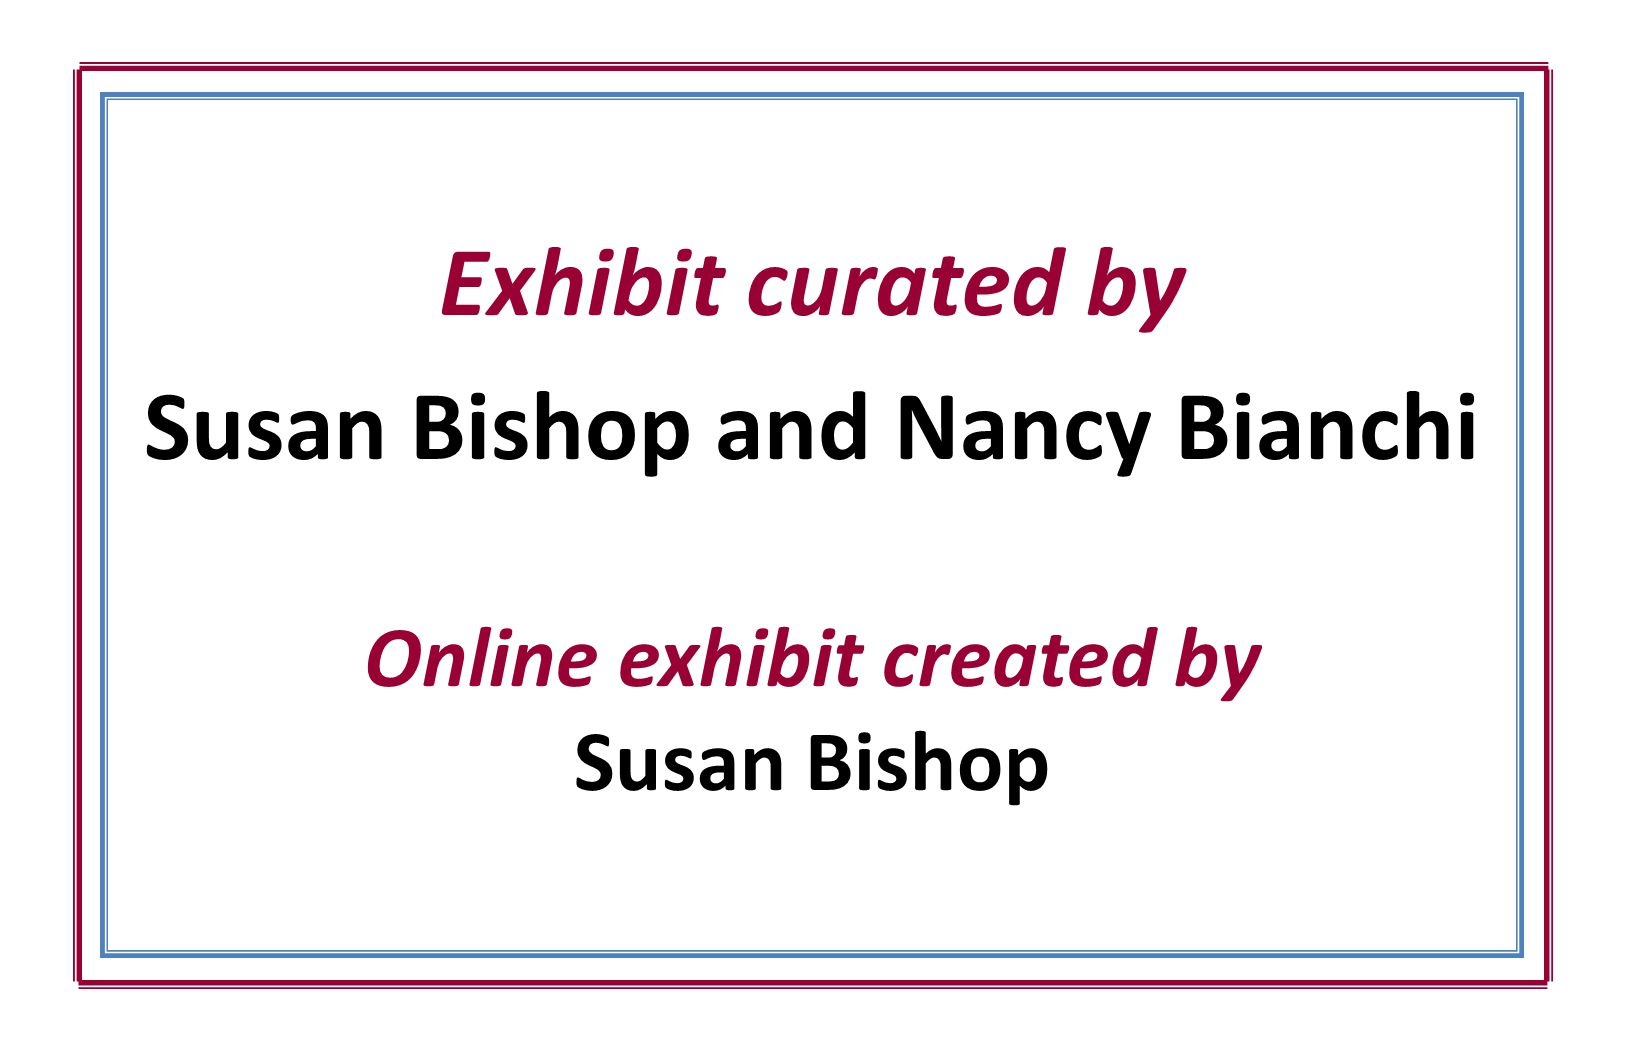 Susan Bishop and Nancy Bianchi Online exhibit created by